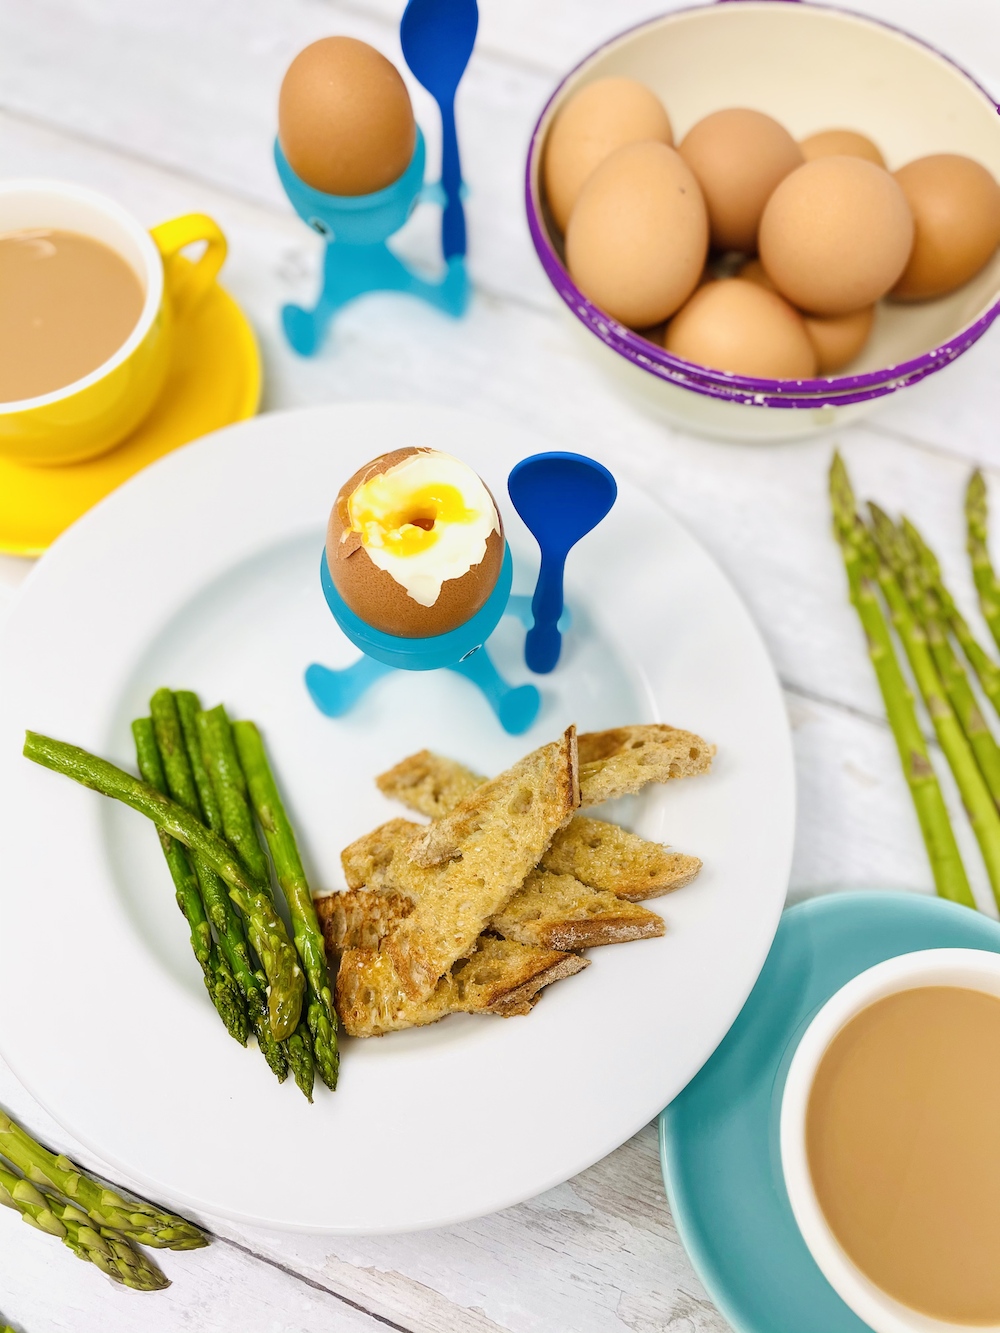 boiled egg and soldiers made from toast and asparagus. Served in alessi egg cups with cups of tea